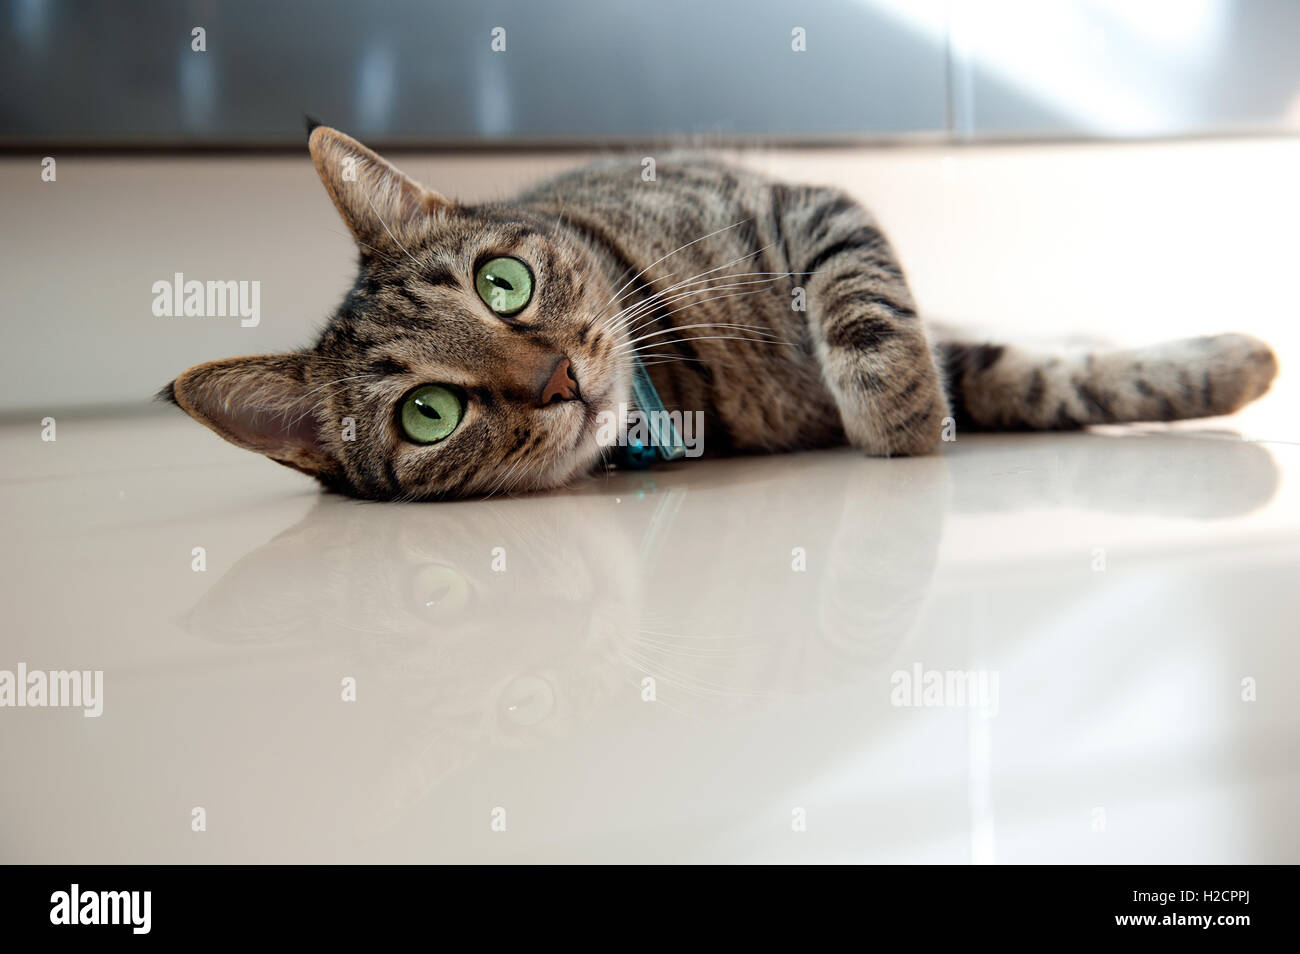 Tabby cat lying on side,looking at camera - Stock Image